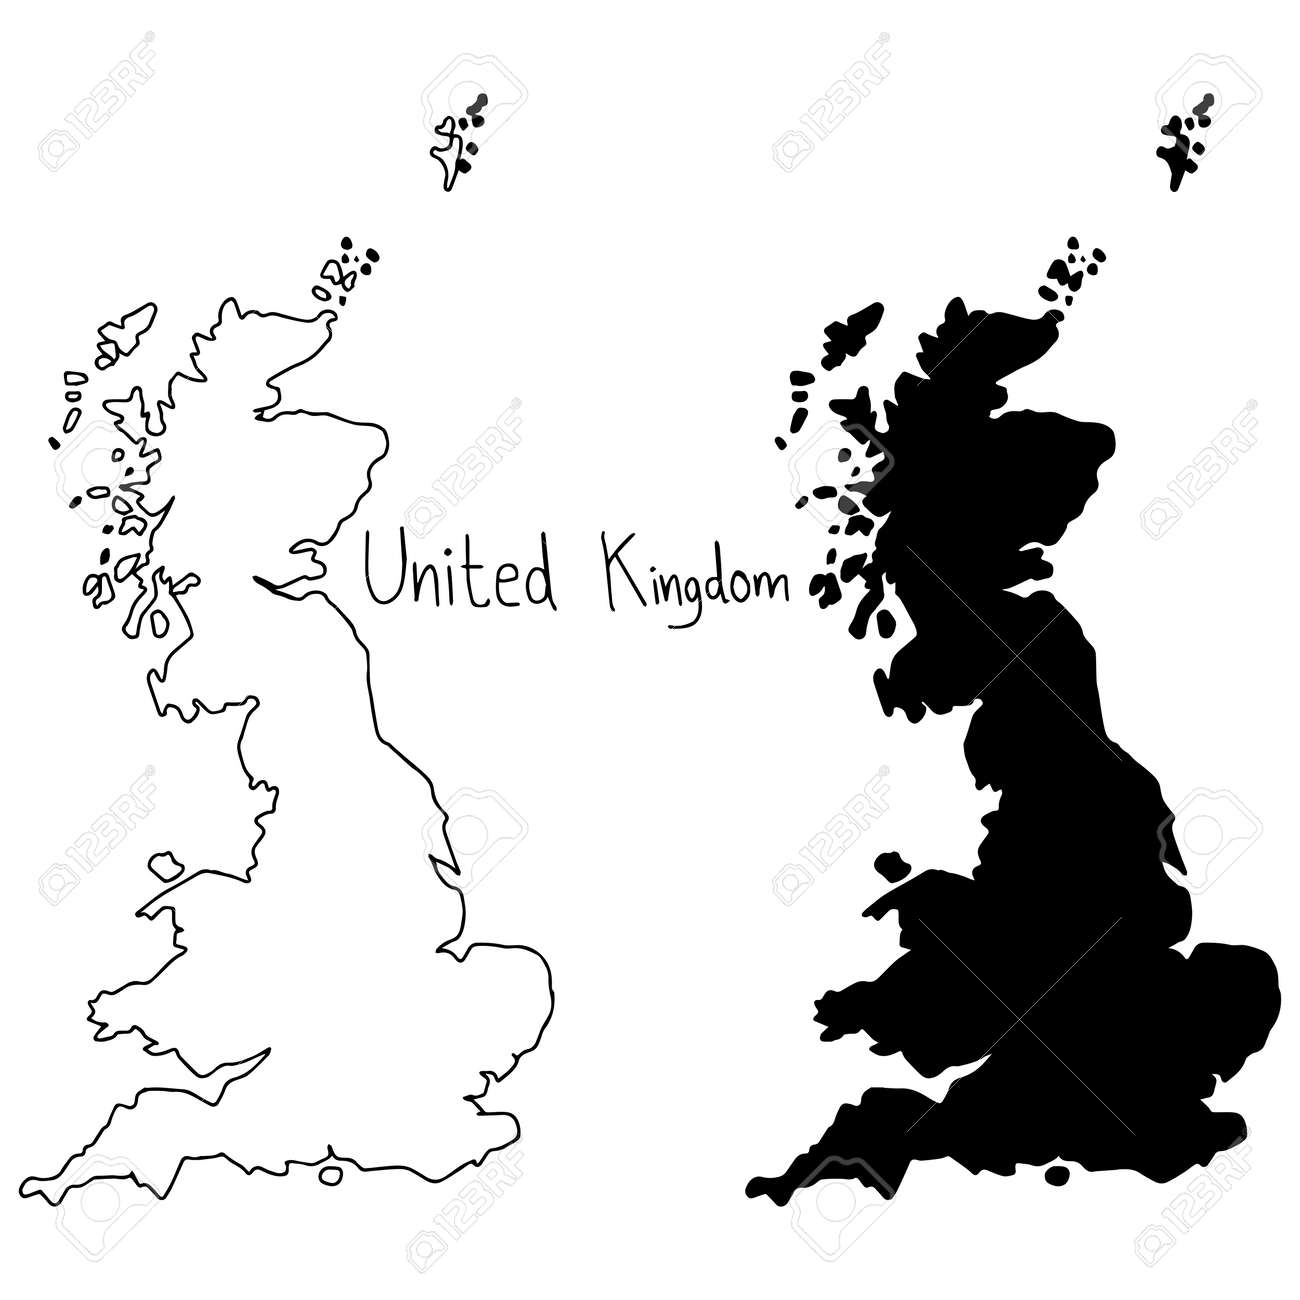 Outline And Silhouette Map Of United Kingdom Vector Illustration - United kingdom map vector